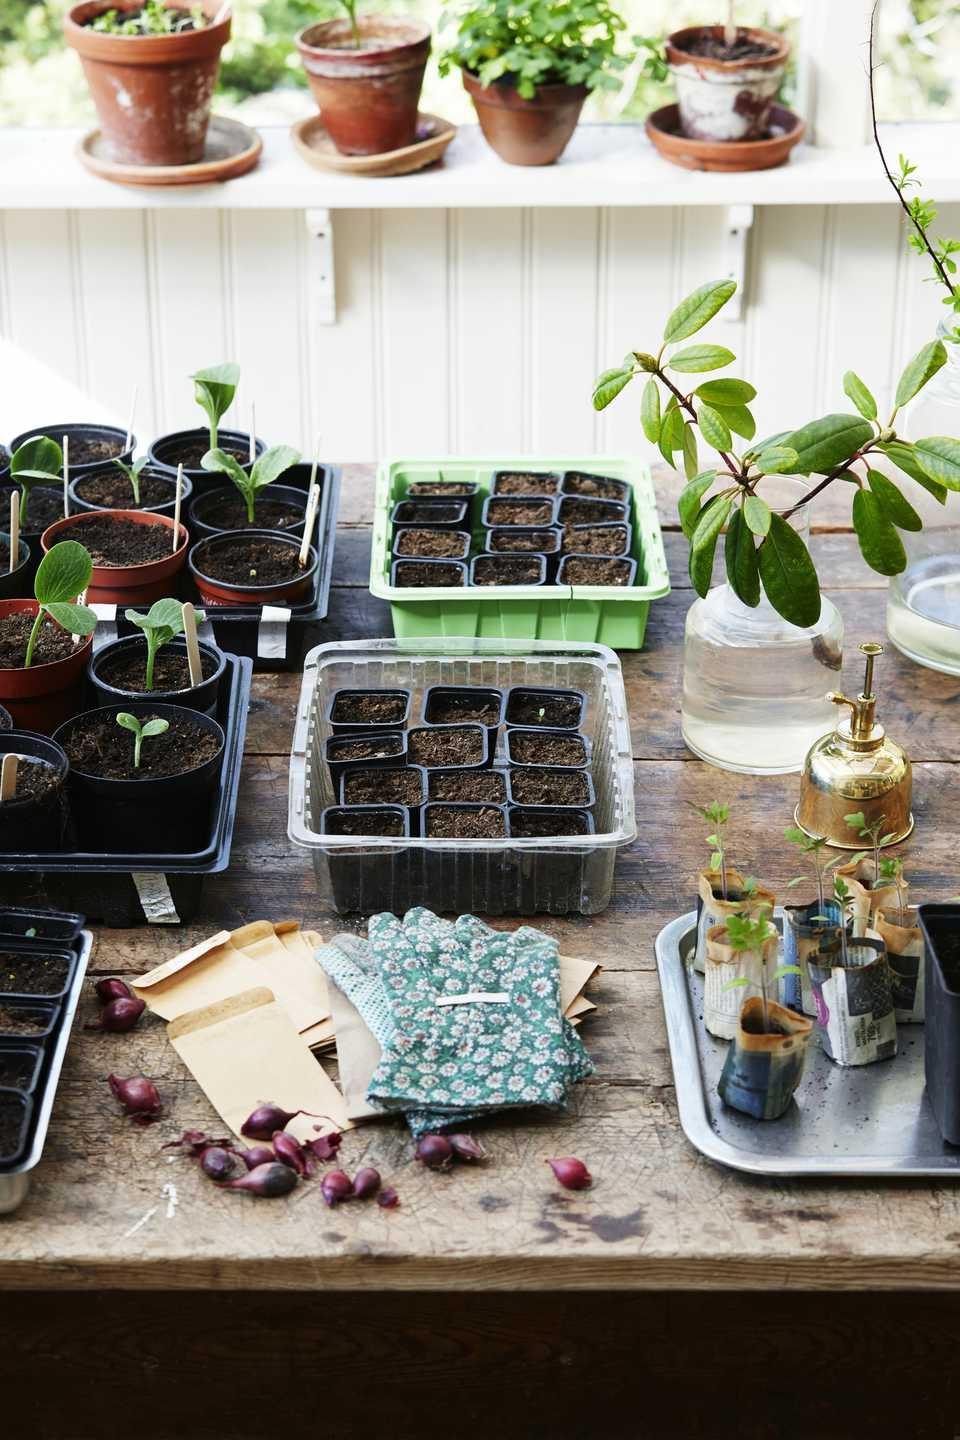 A selection of potted plants and work gloves